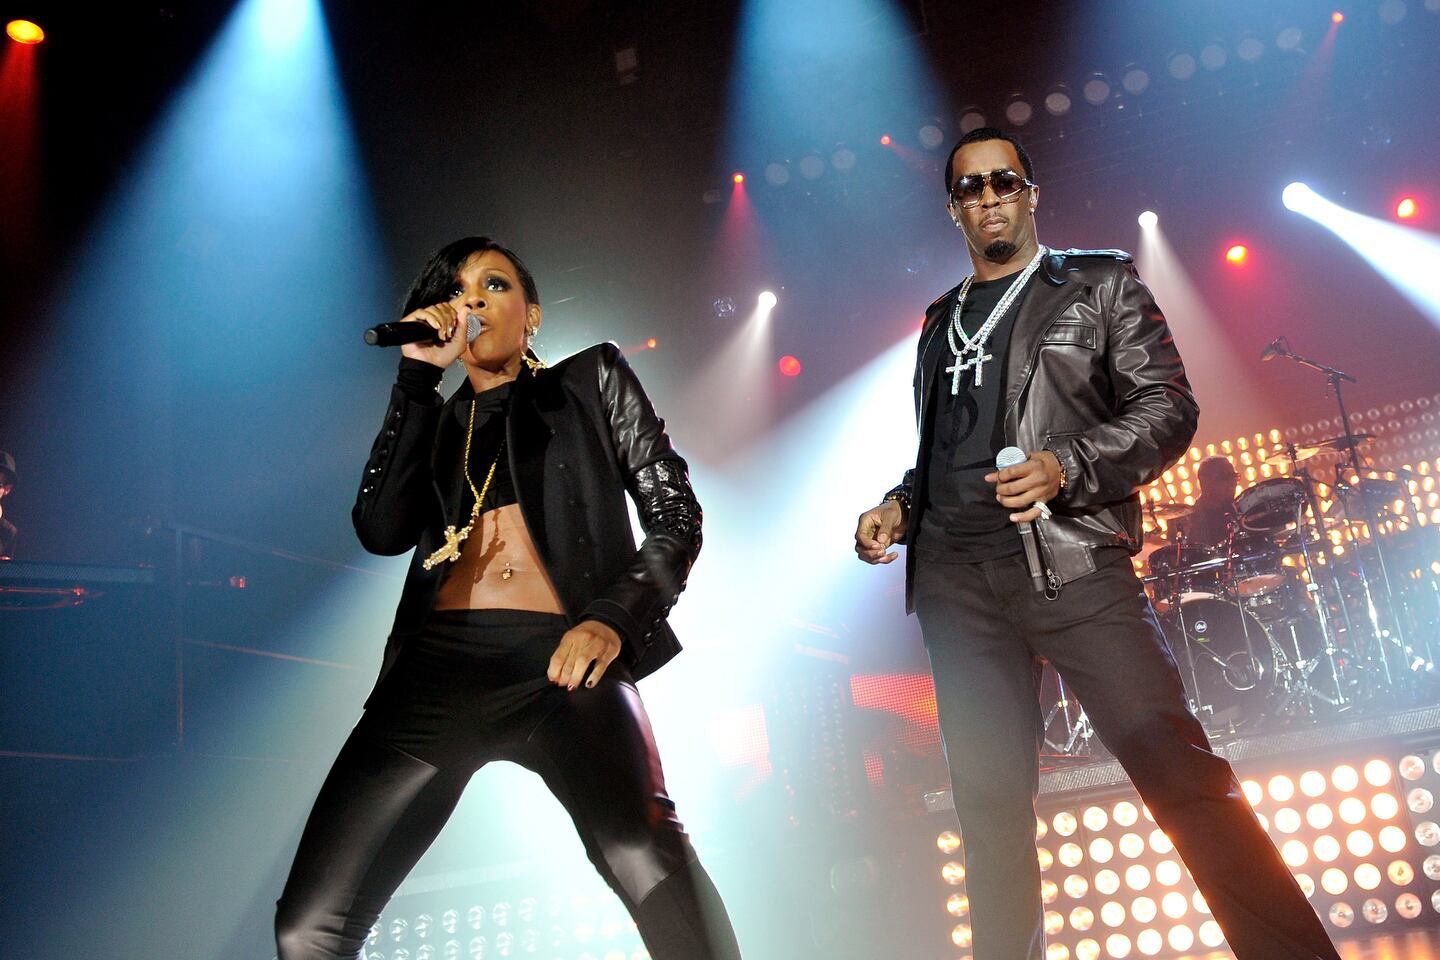 MTV Crashes Glasgow, Headlined By Diddy-Dirty Money